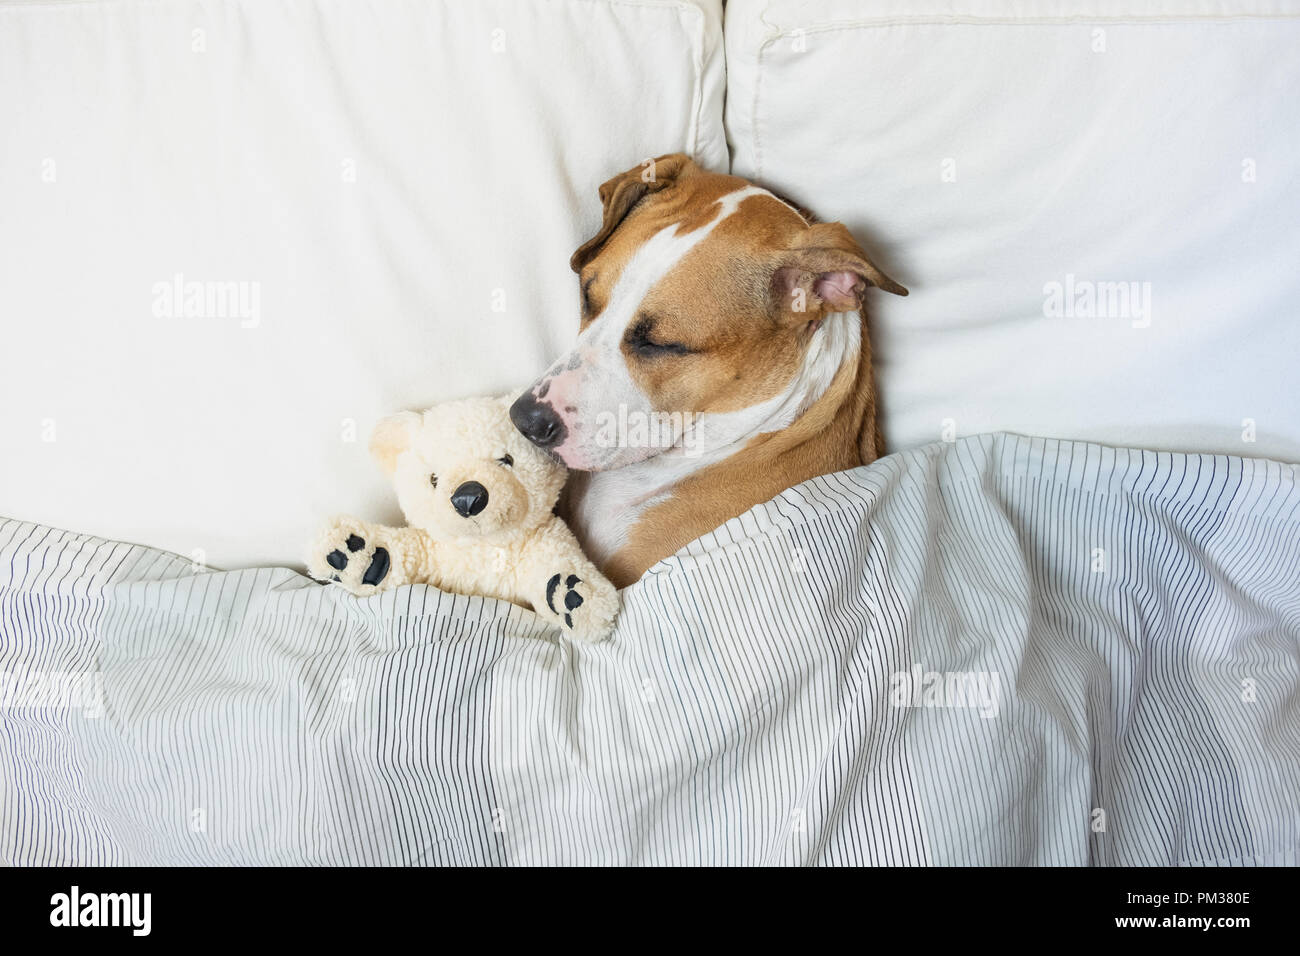 Cute dog sleeping in bed with a fluffy toy bear, top view. Staffordshire terrier puppy resting in clean white bedroom at home - Stock Image